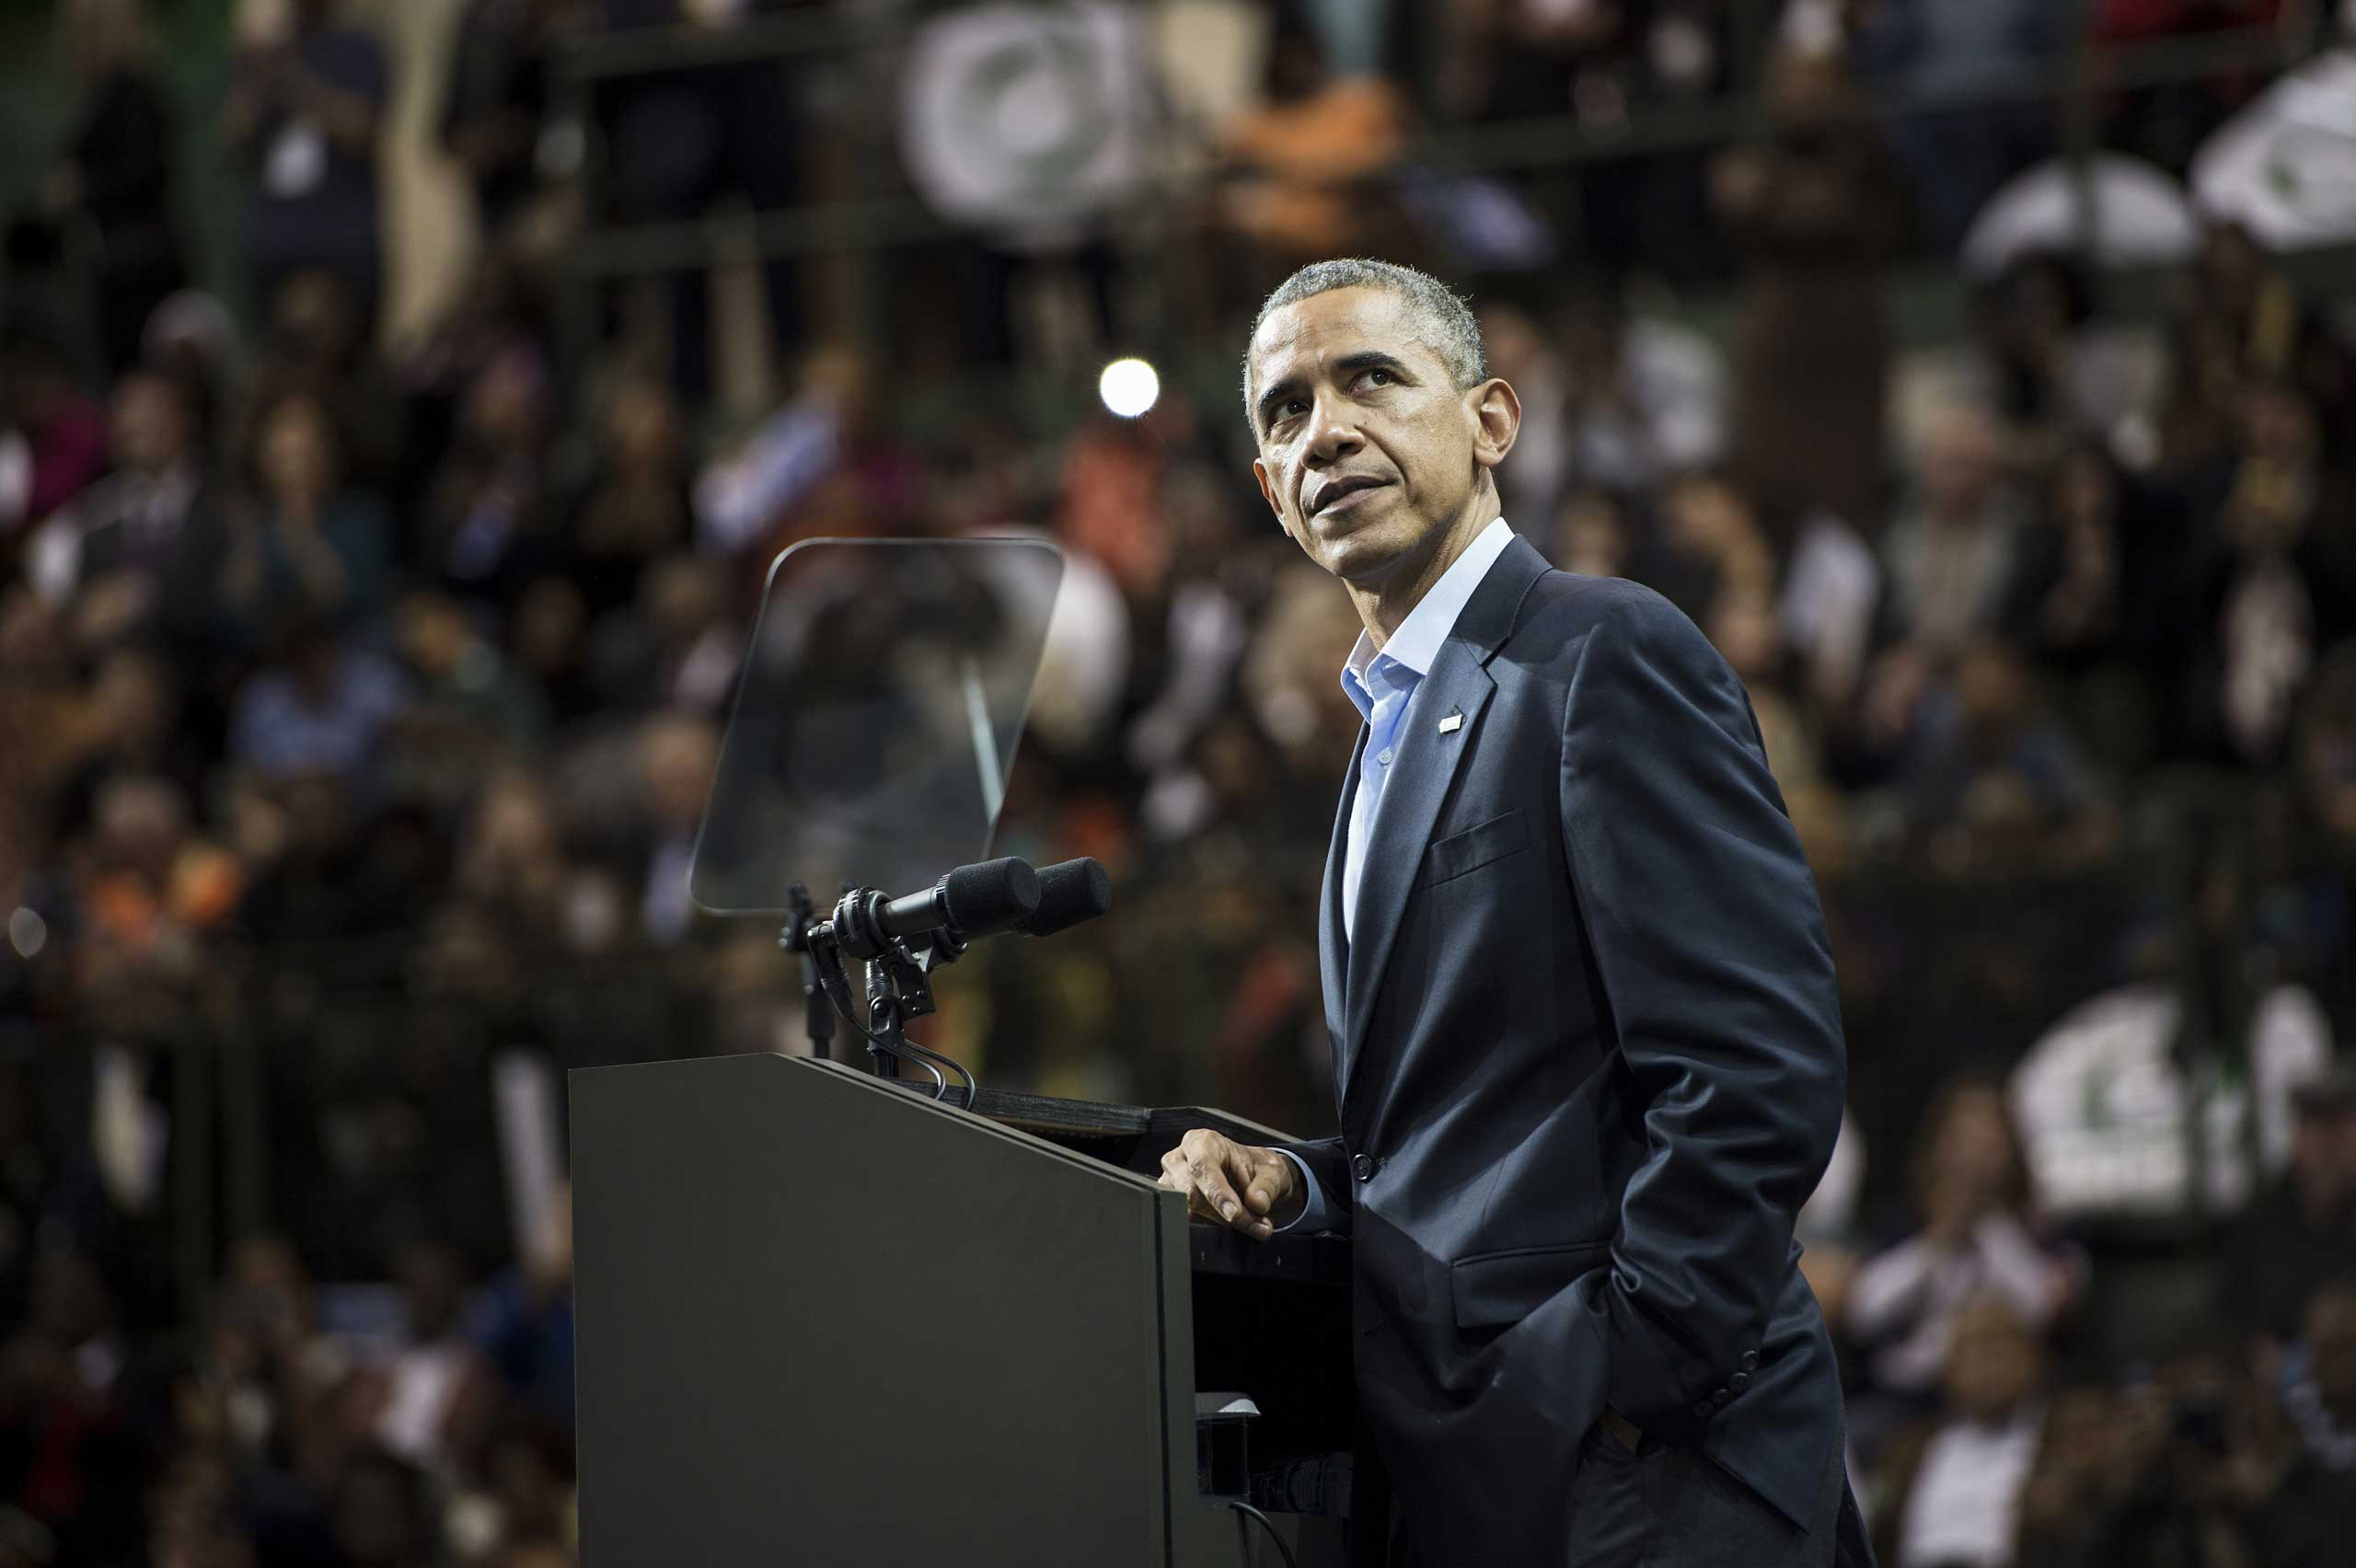 President Barack Obama pauses while speaking during a rally at Chicago State University Oct. 19, 2014 in Chicago.